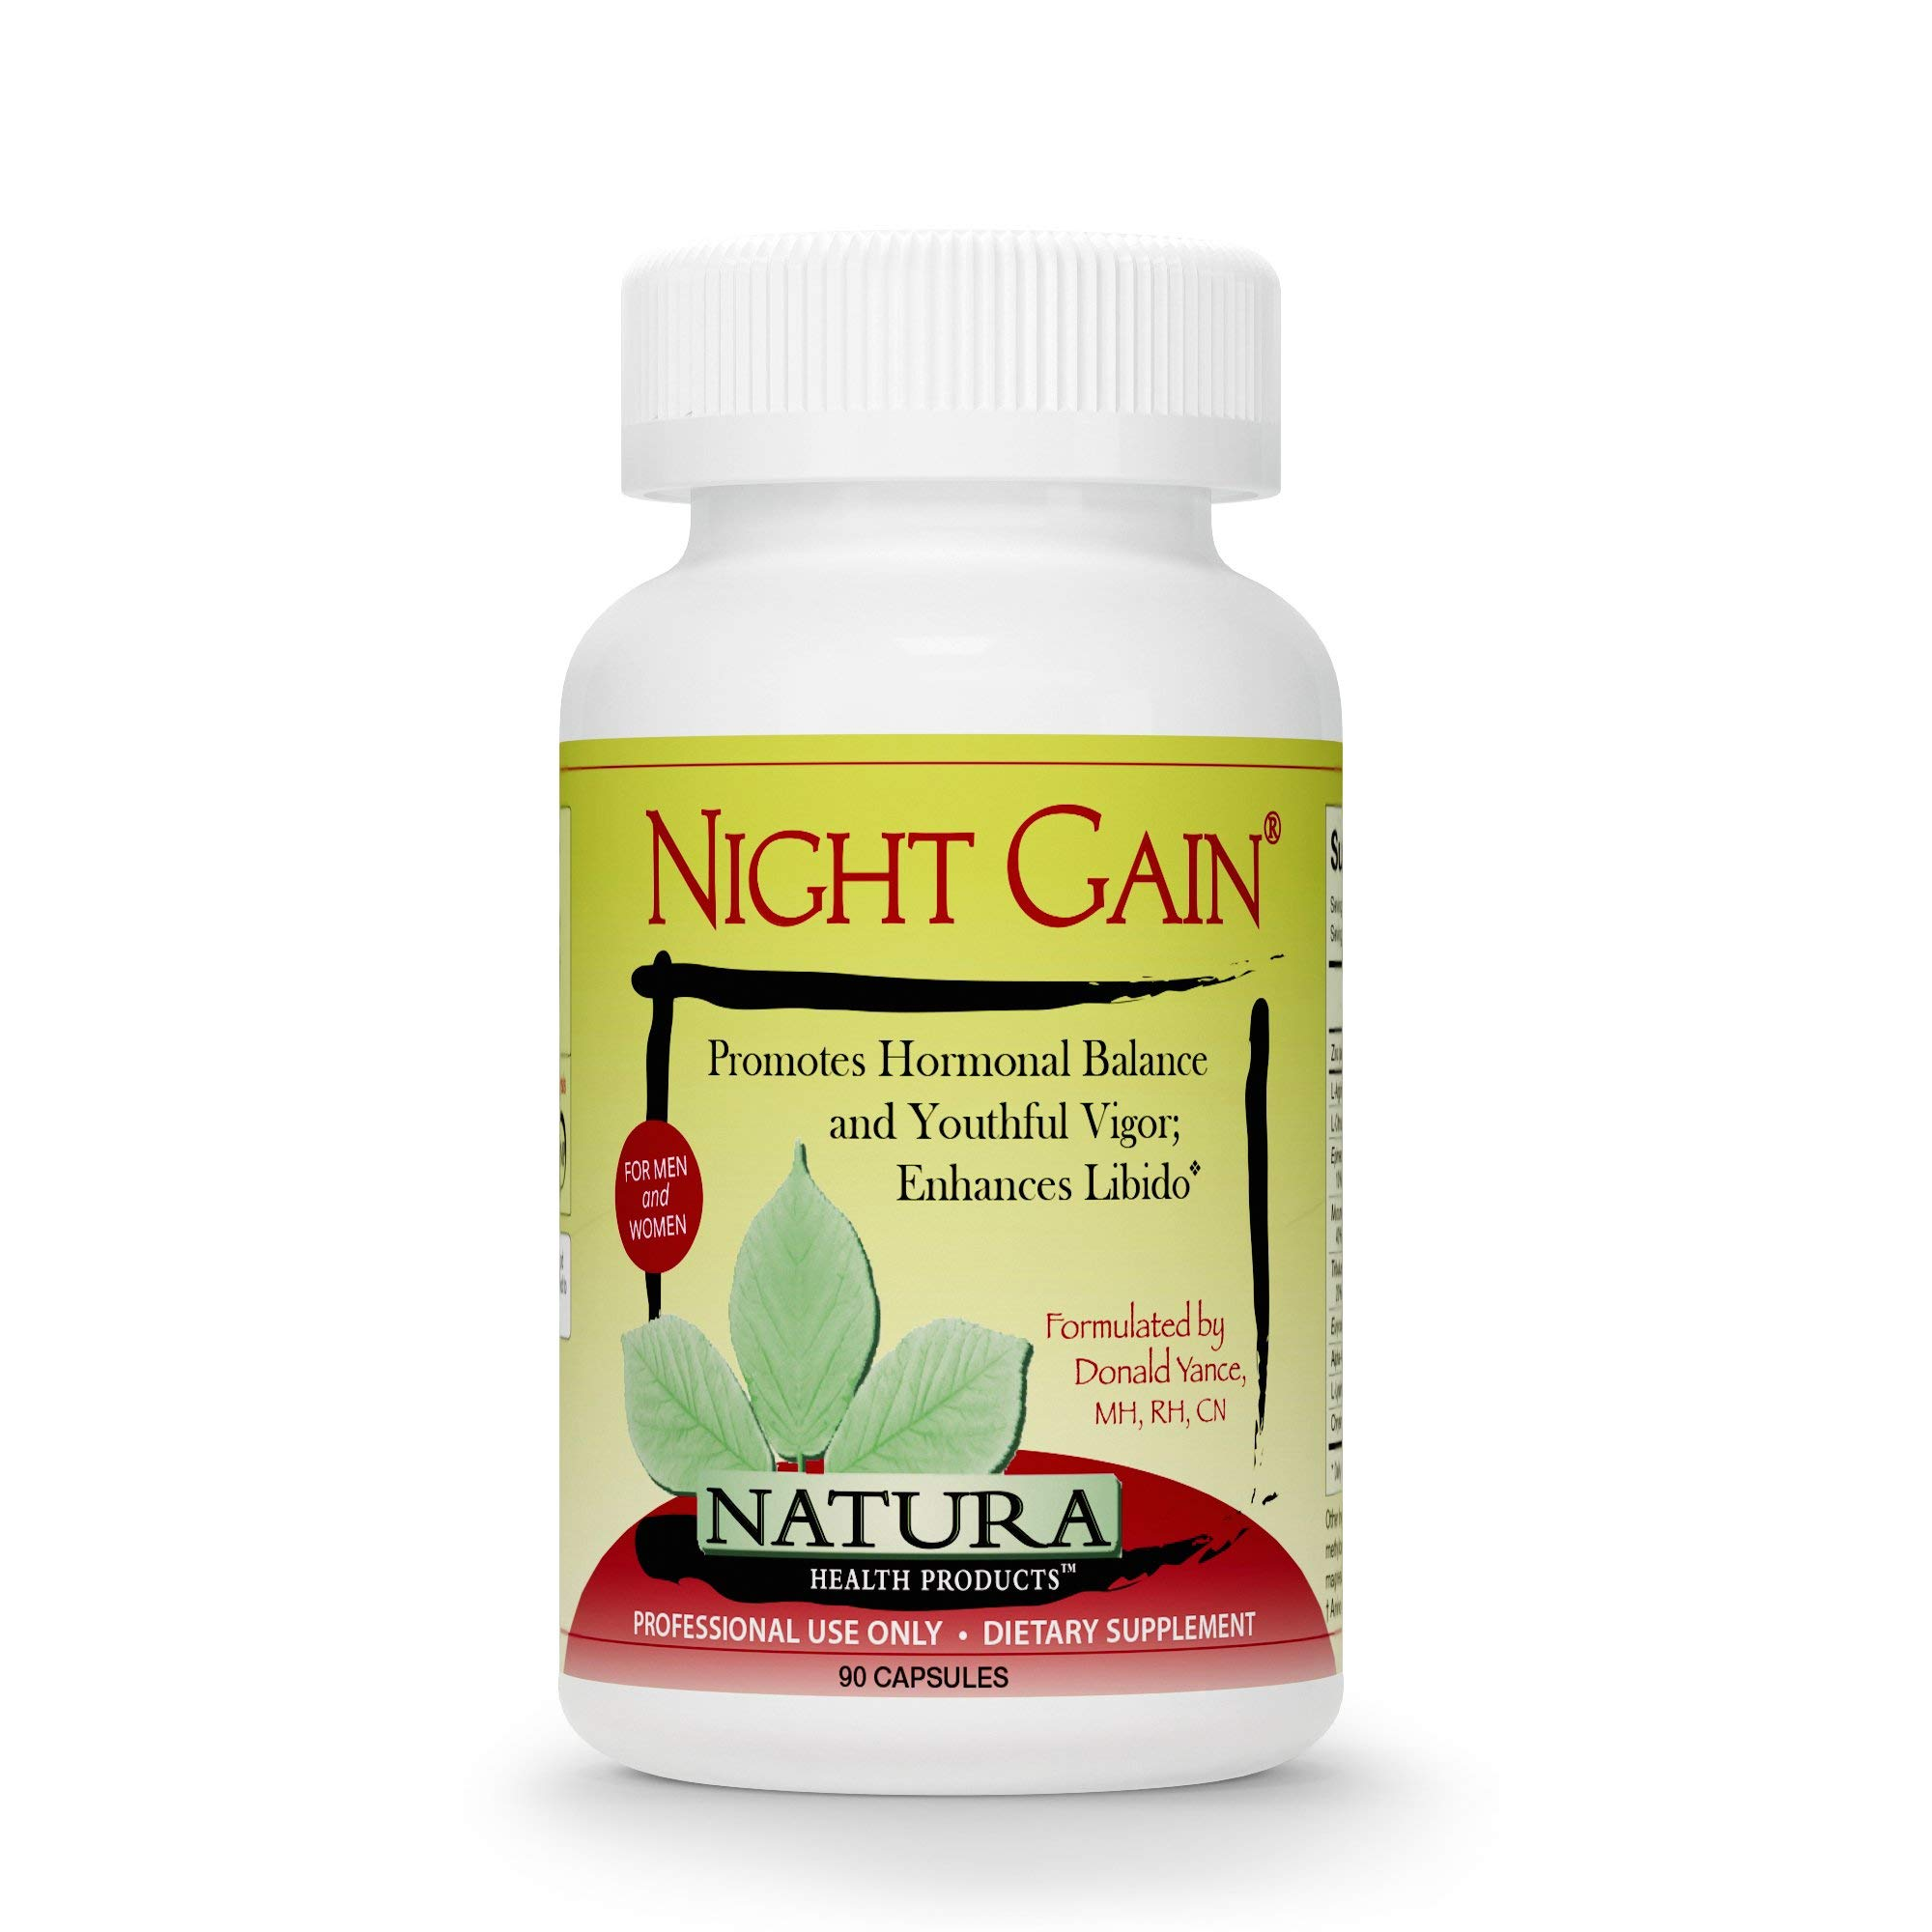 Natura Health Products - Night Gain - Supports Youthful Hormones to Promote Vigor, Longevity, and Enhance Libido - 90 Capsules by Natura Health Products